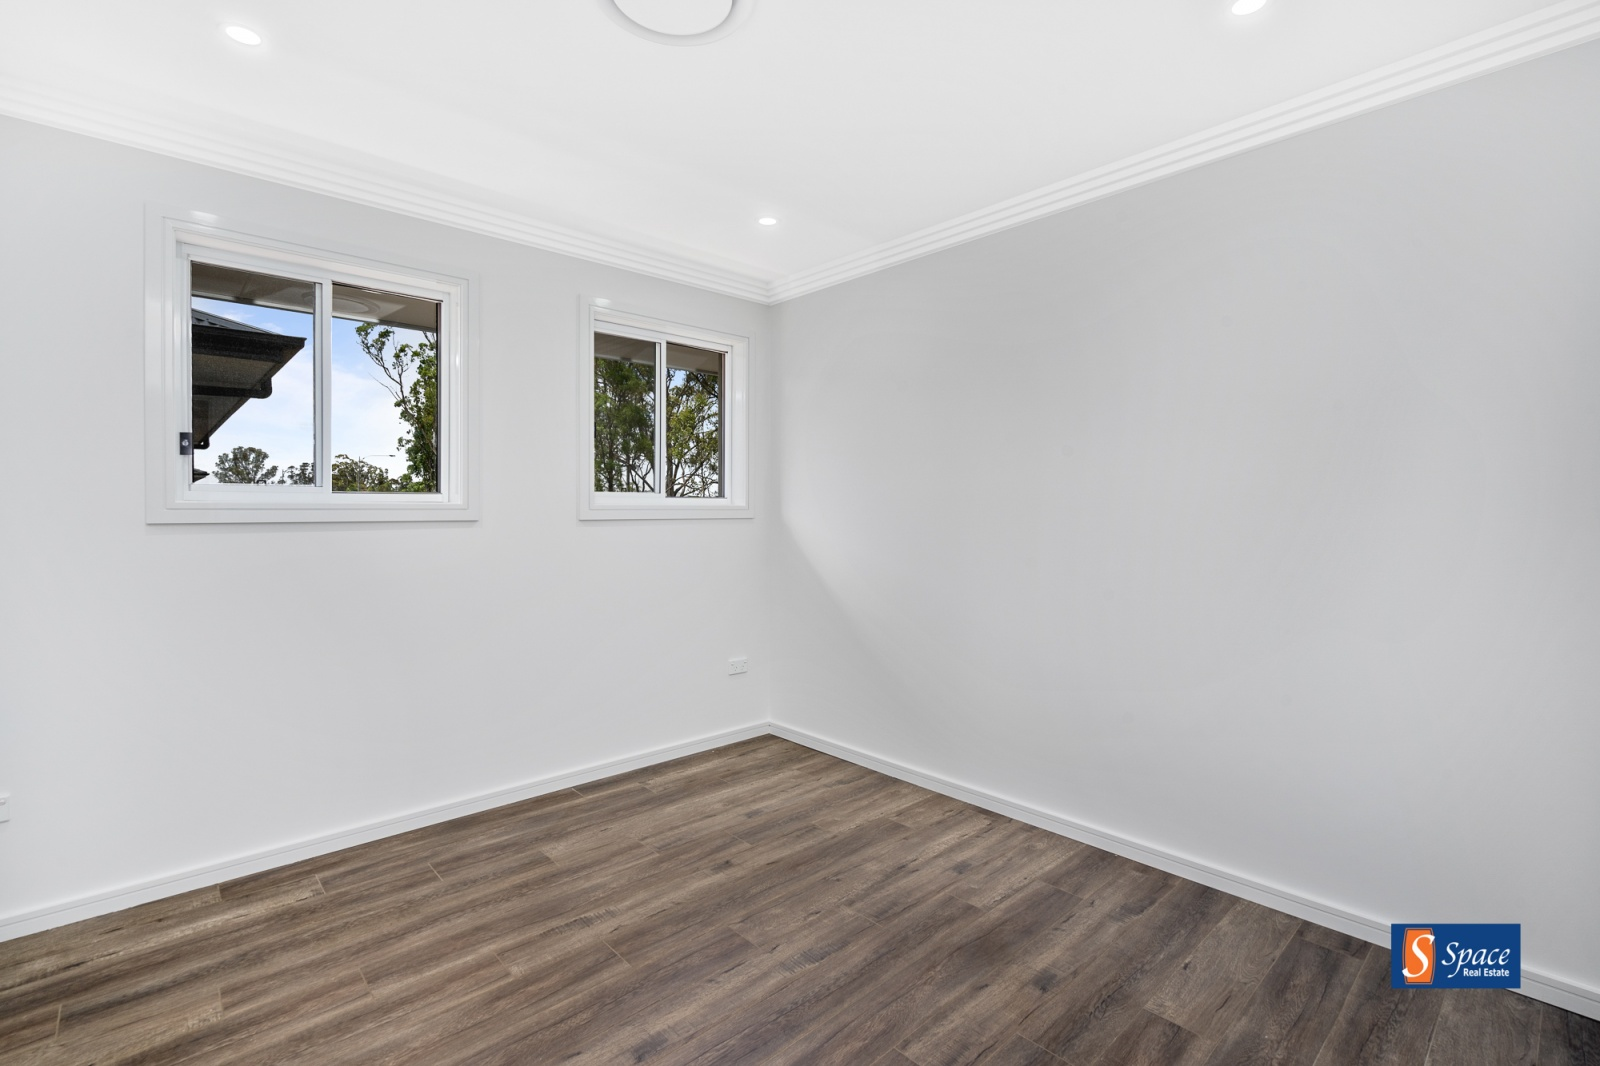 69a & 69a Thorpe Circuit,Oran Park,NSW,4 Bedrooms Bedrooms,2 BathroomsBathrooms,Duplex,Thorpe Circuit,1440